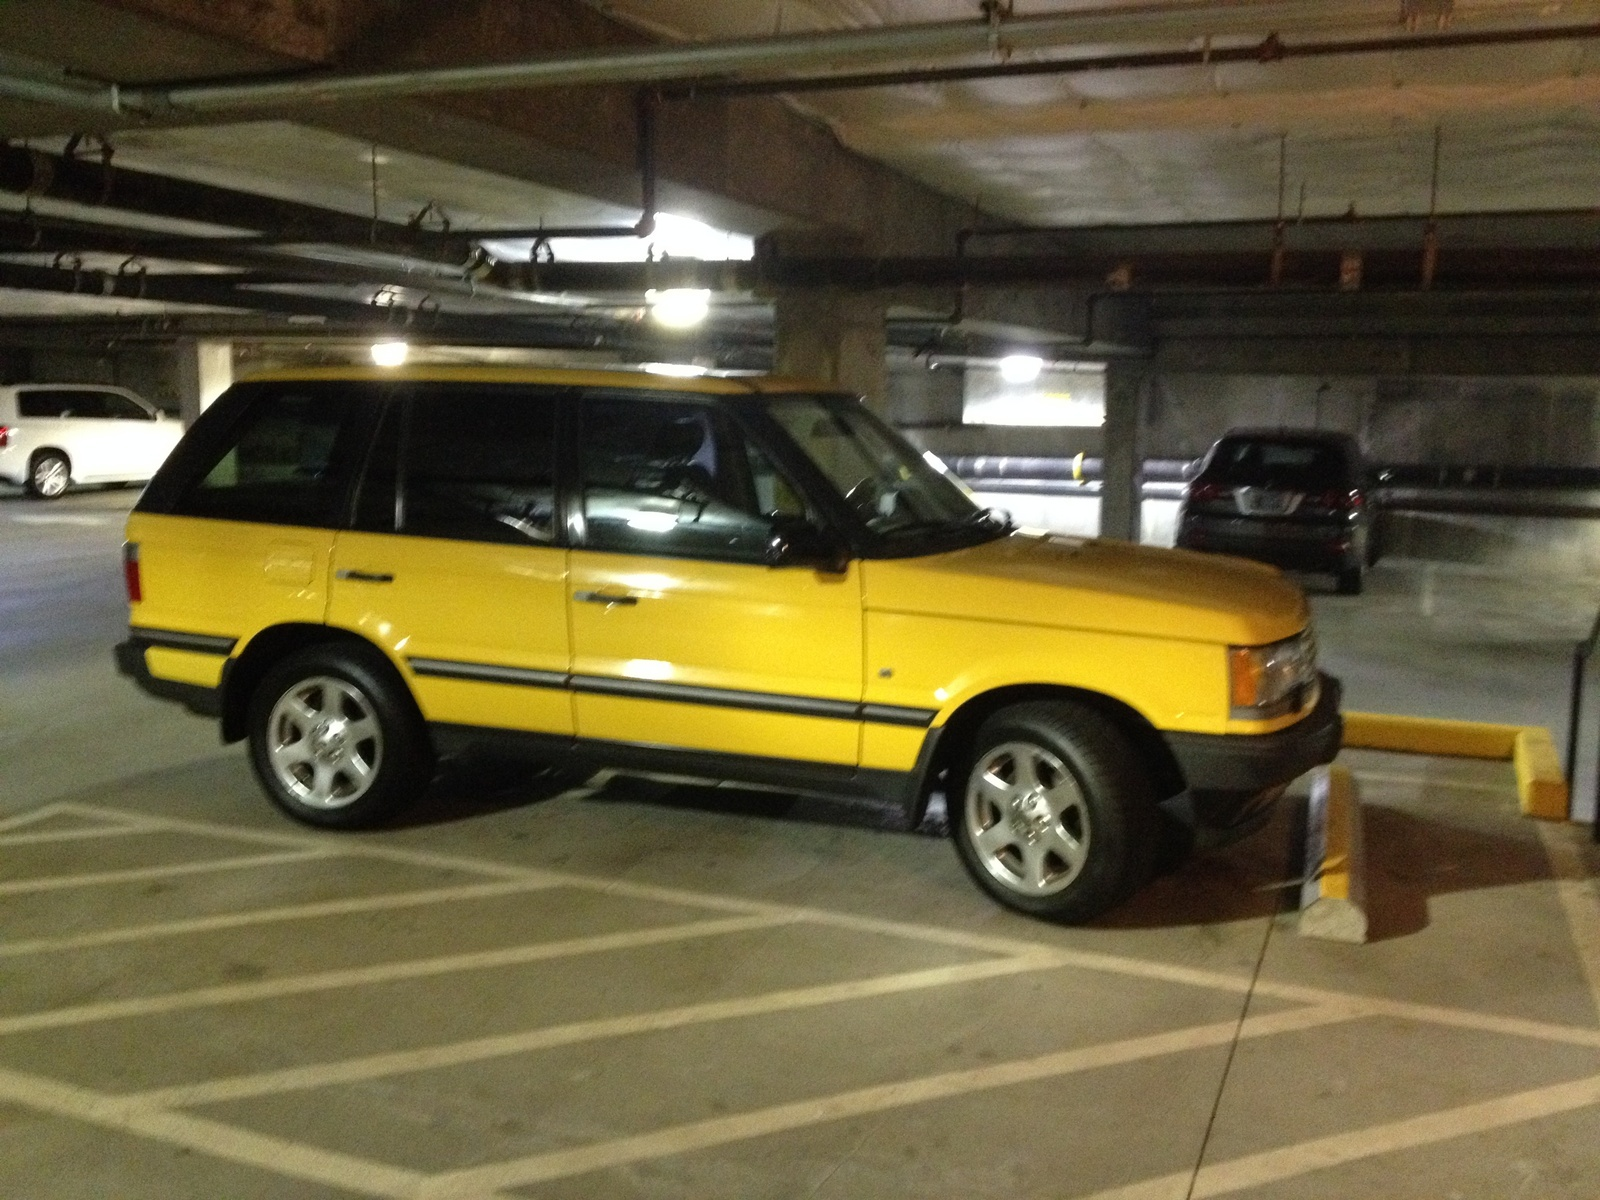 Land Rover Range Rover Questions 2002 Borrego Edtion How many